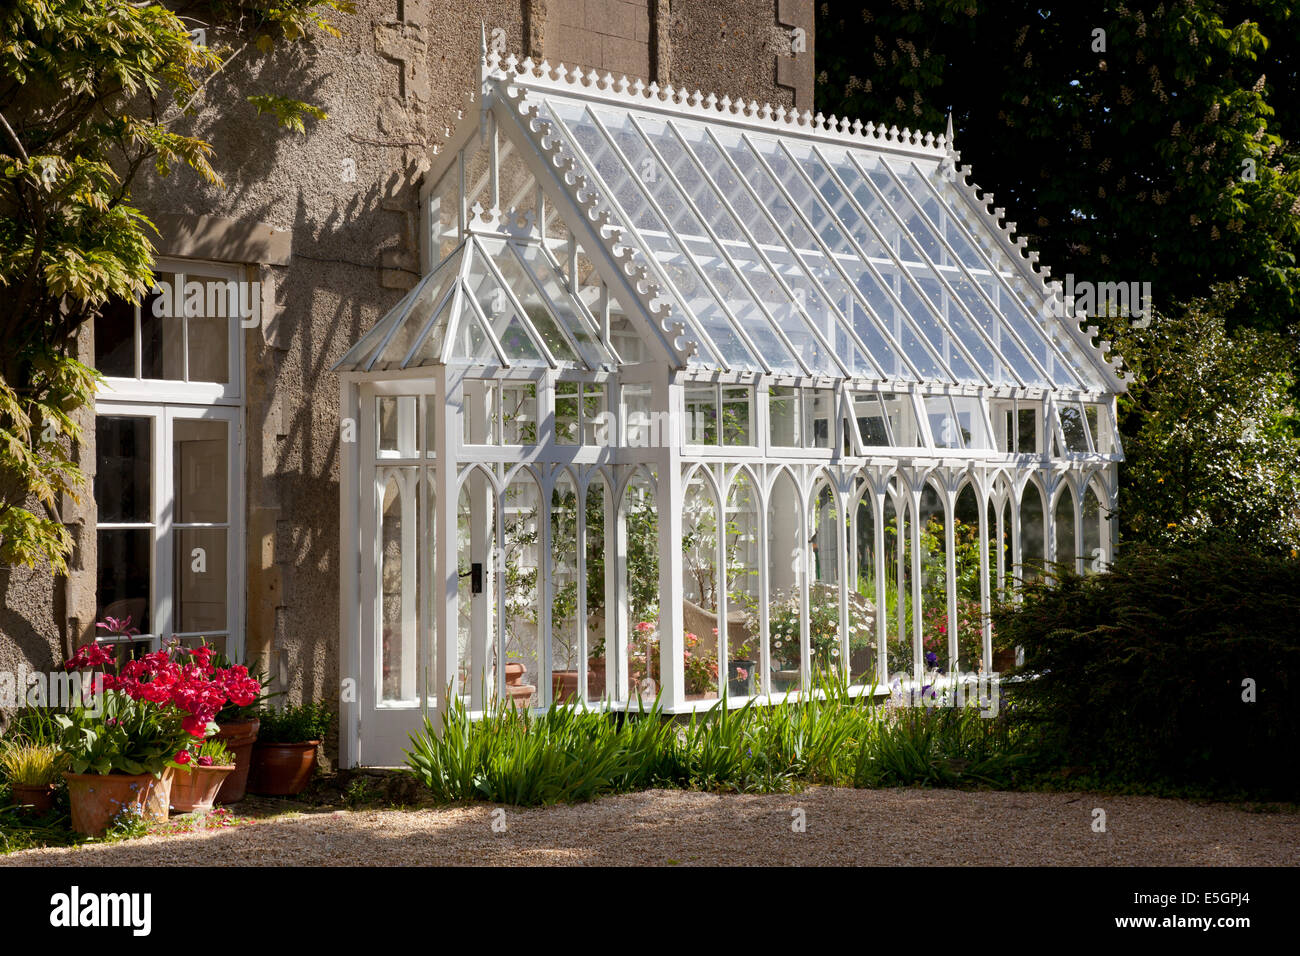 Traditional wooden greenhouse attached to side of house, English garden, England - Stock Image